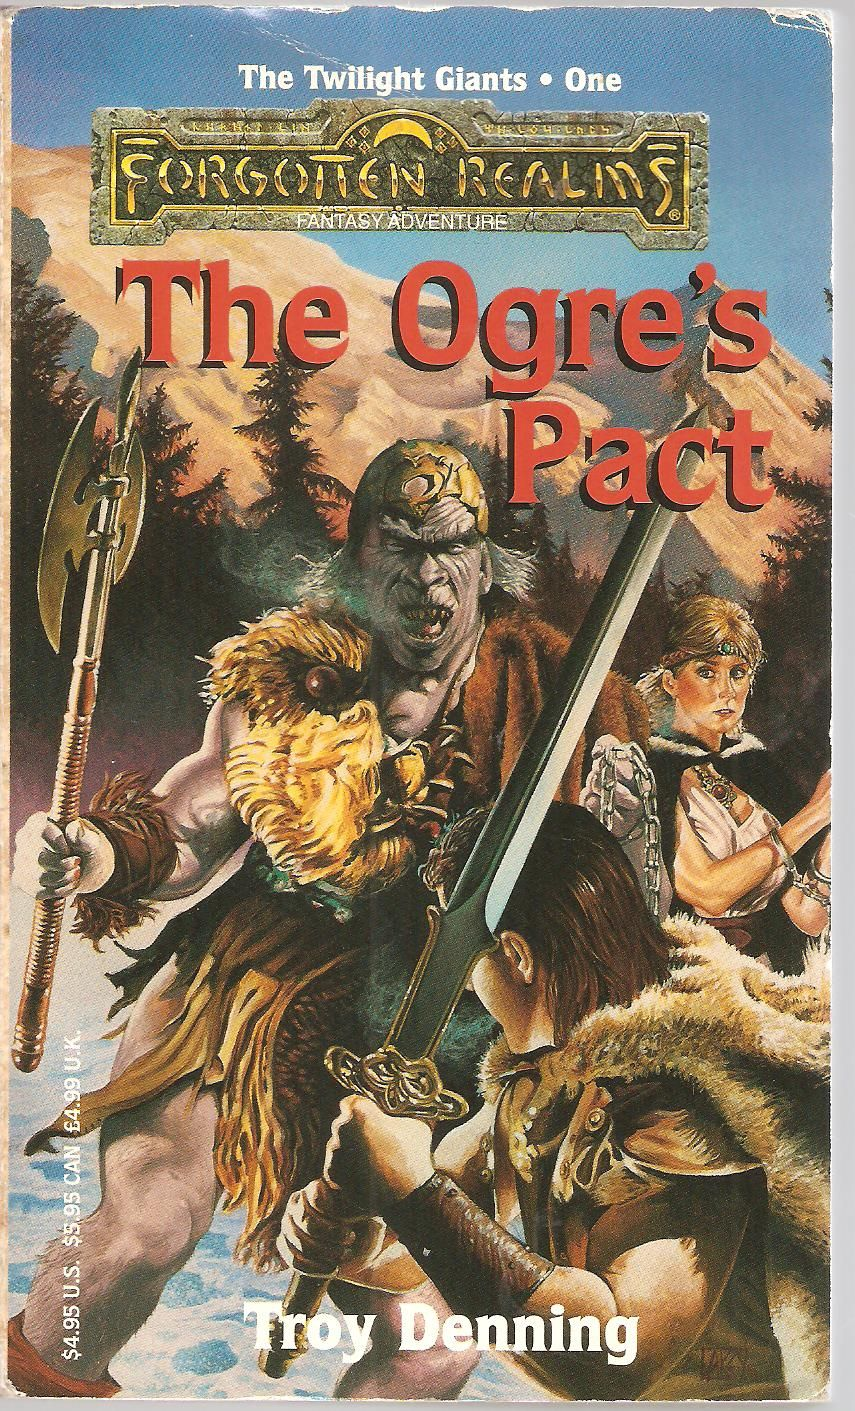 The Ogres Pact: The Twilight Giants, Book I